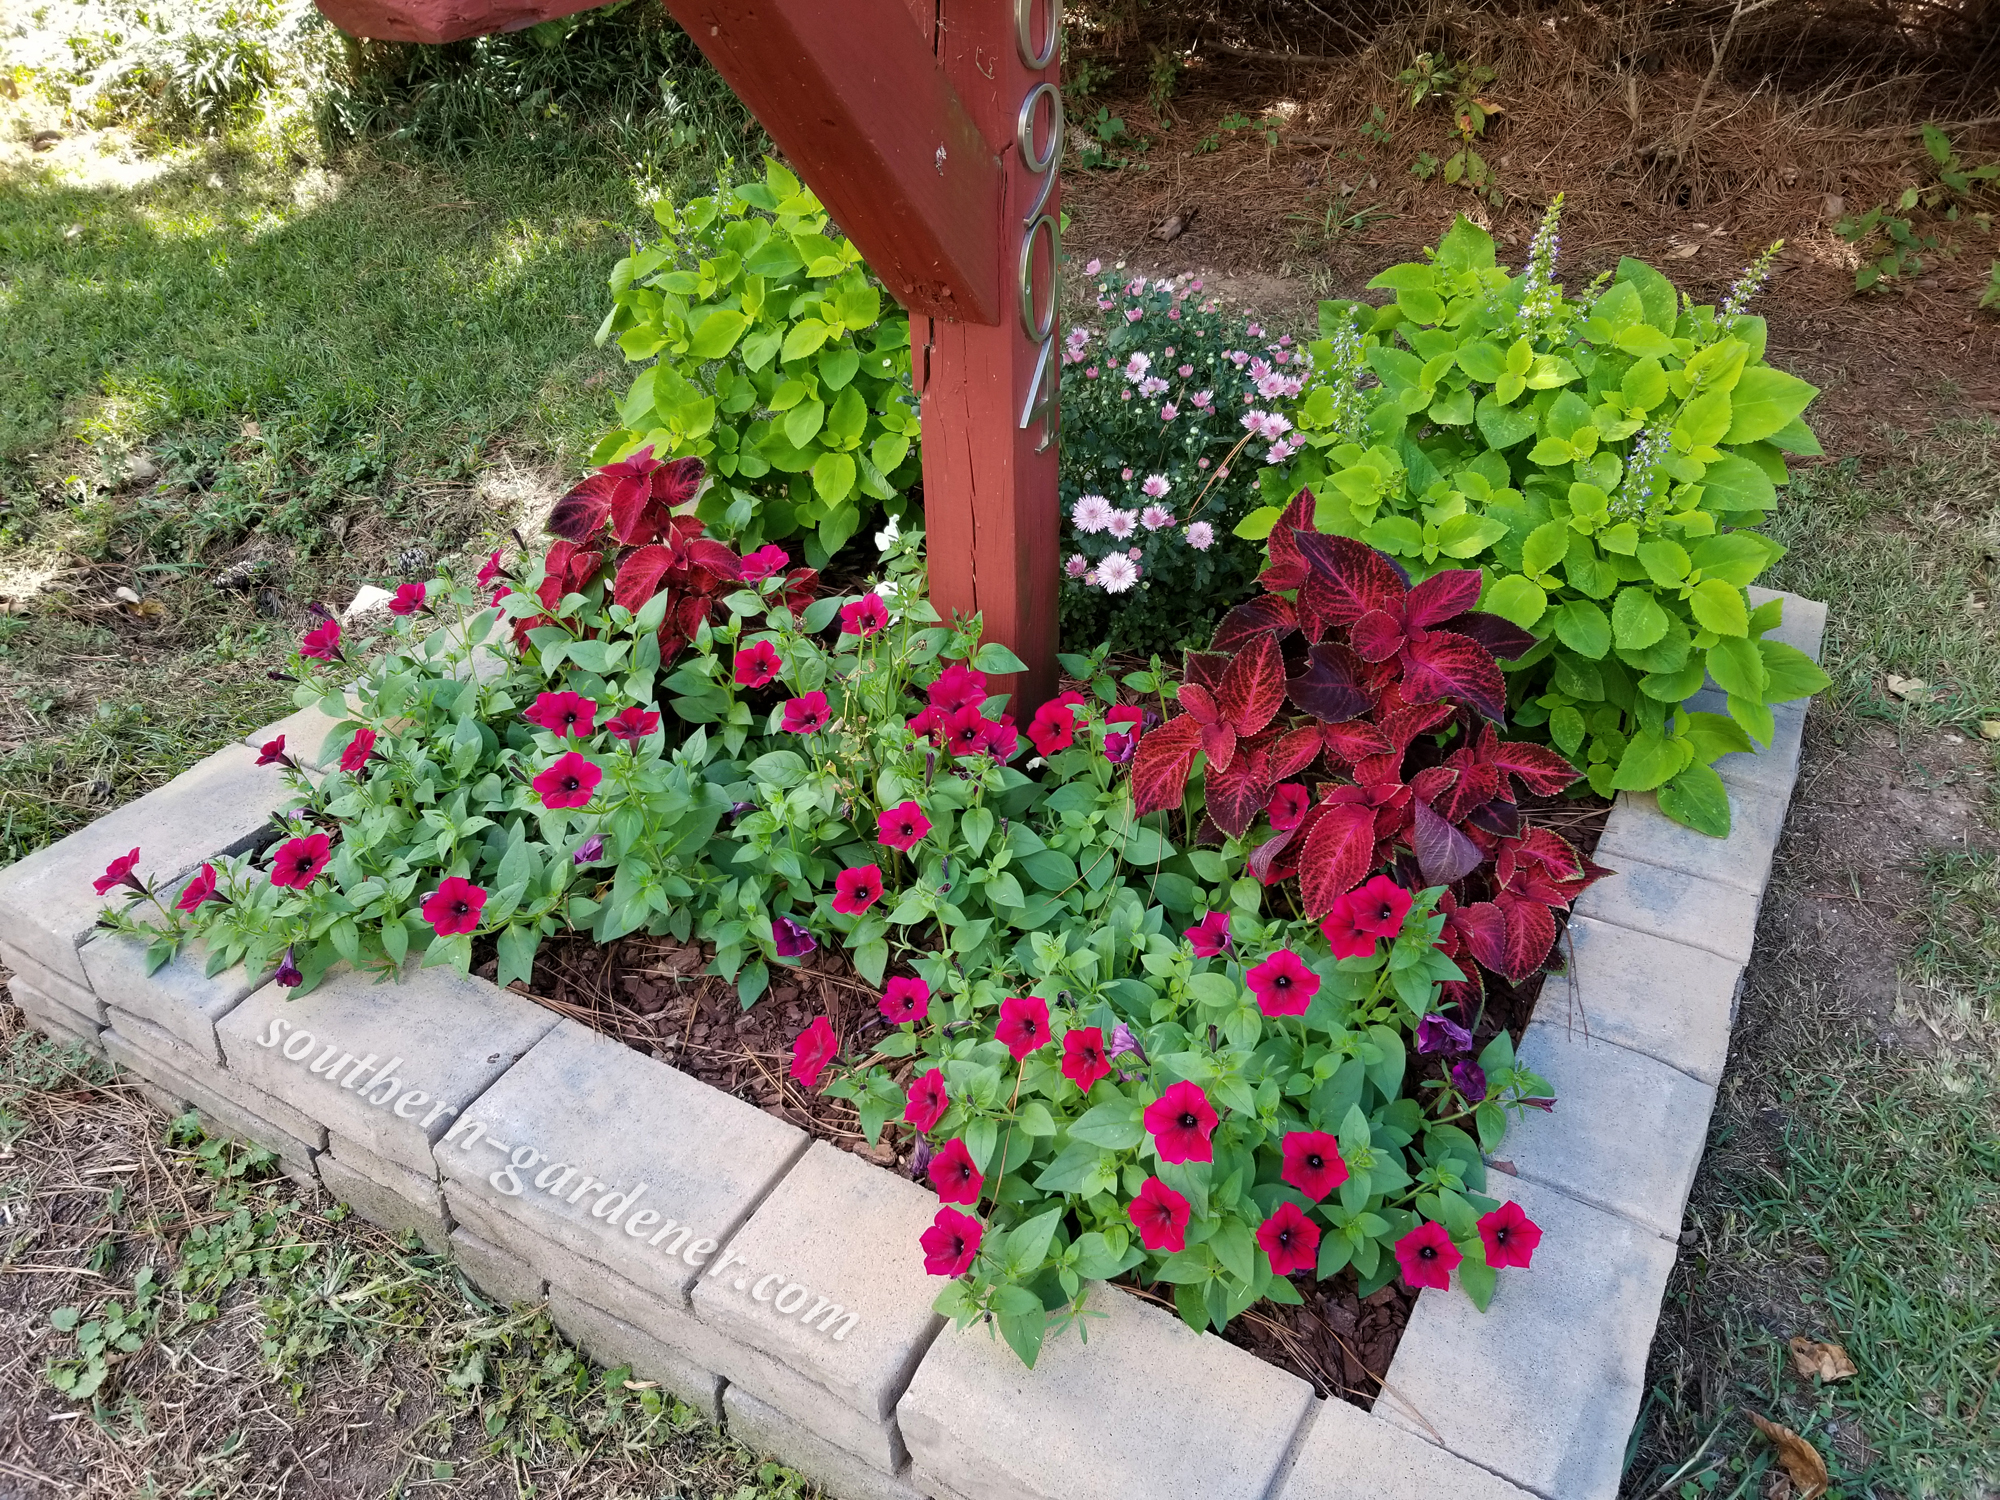 coleus, dendranthema (chrysanthemum), petunias, miniature rose bush